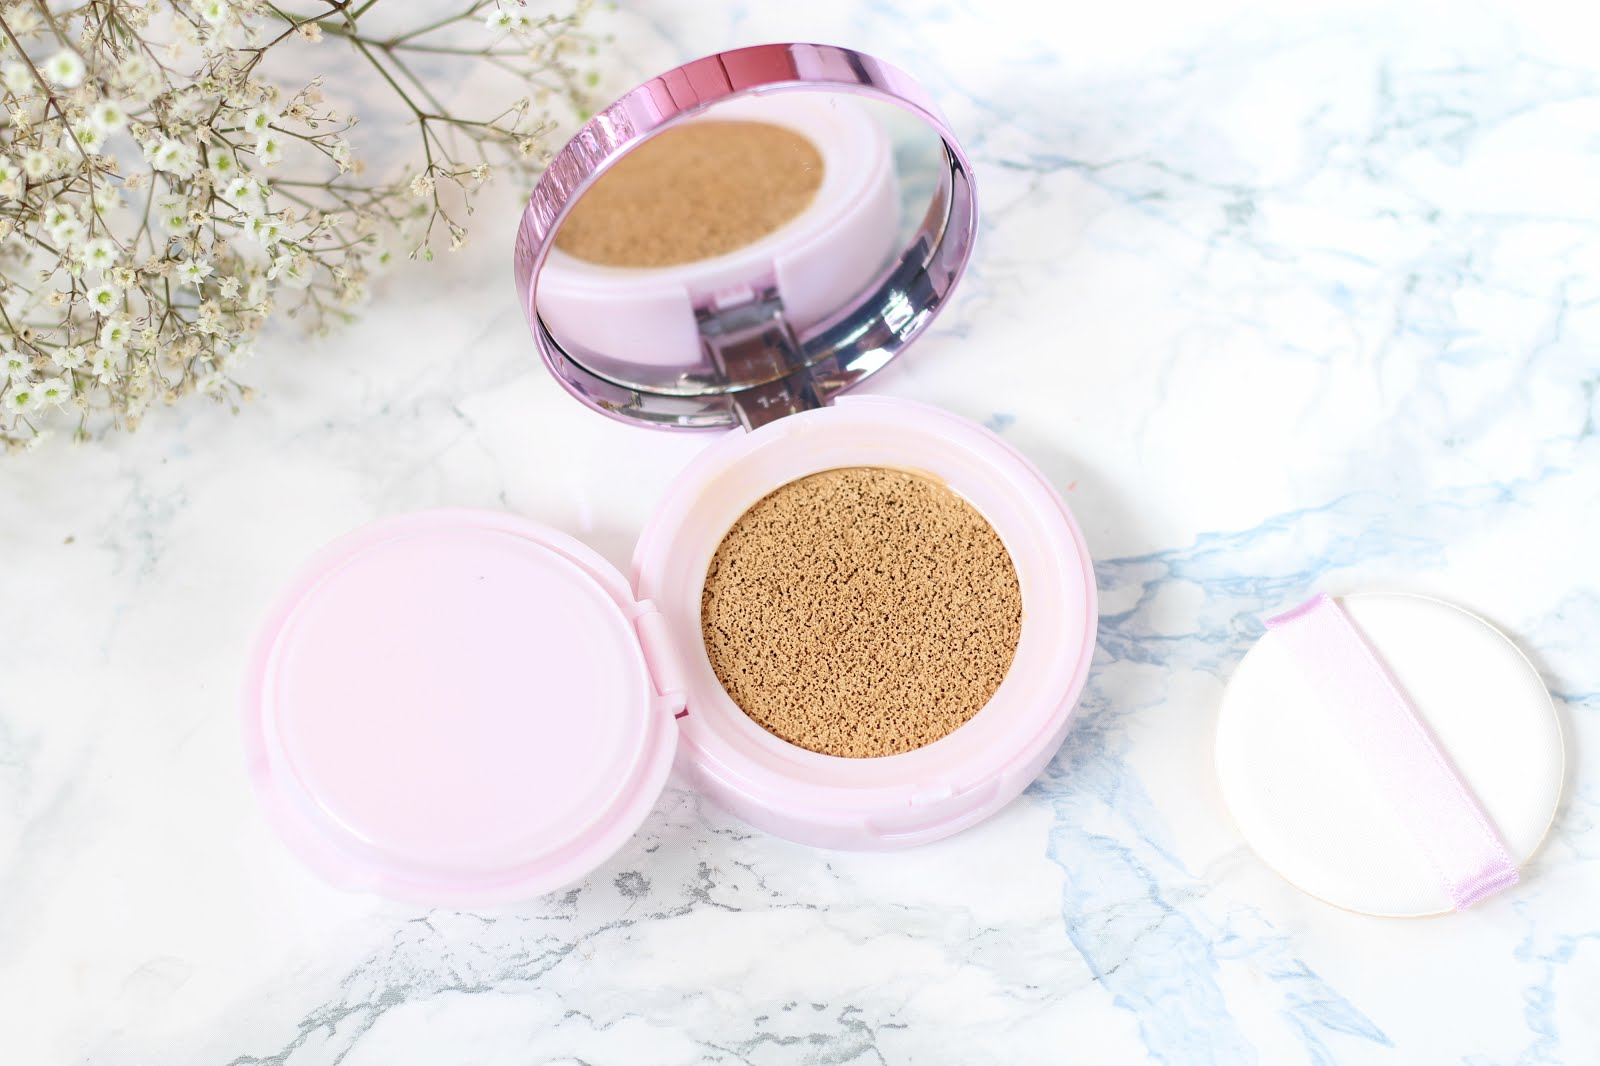 loreal nude magique cushion, loreal cushion, loreal cushion foundation, loreal cushion foundation